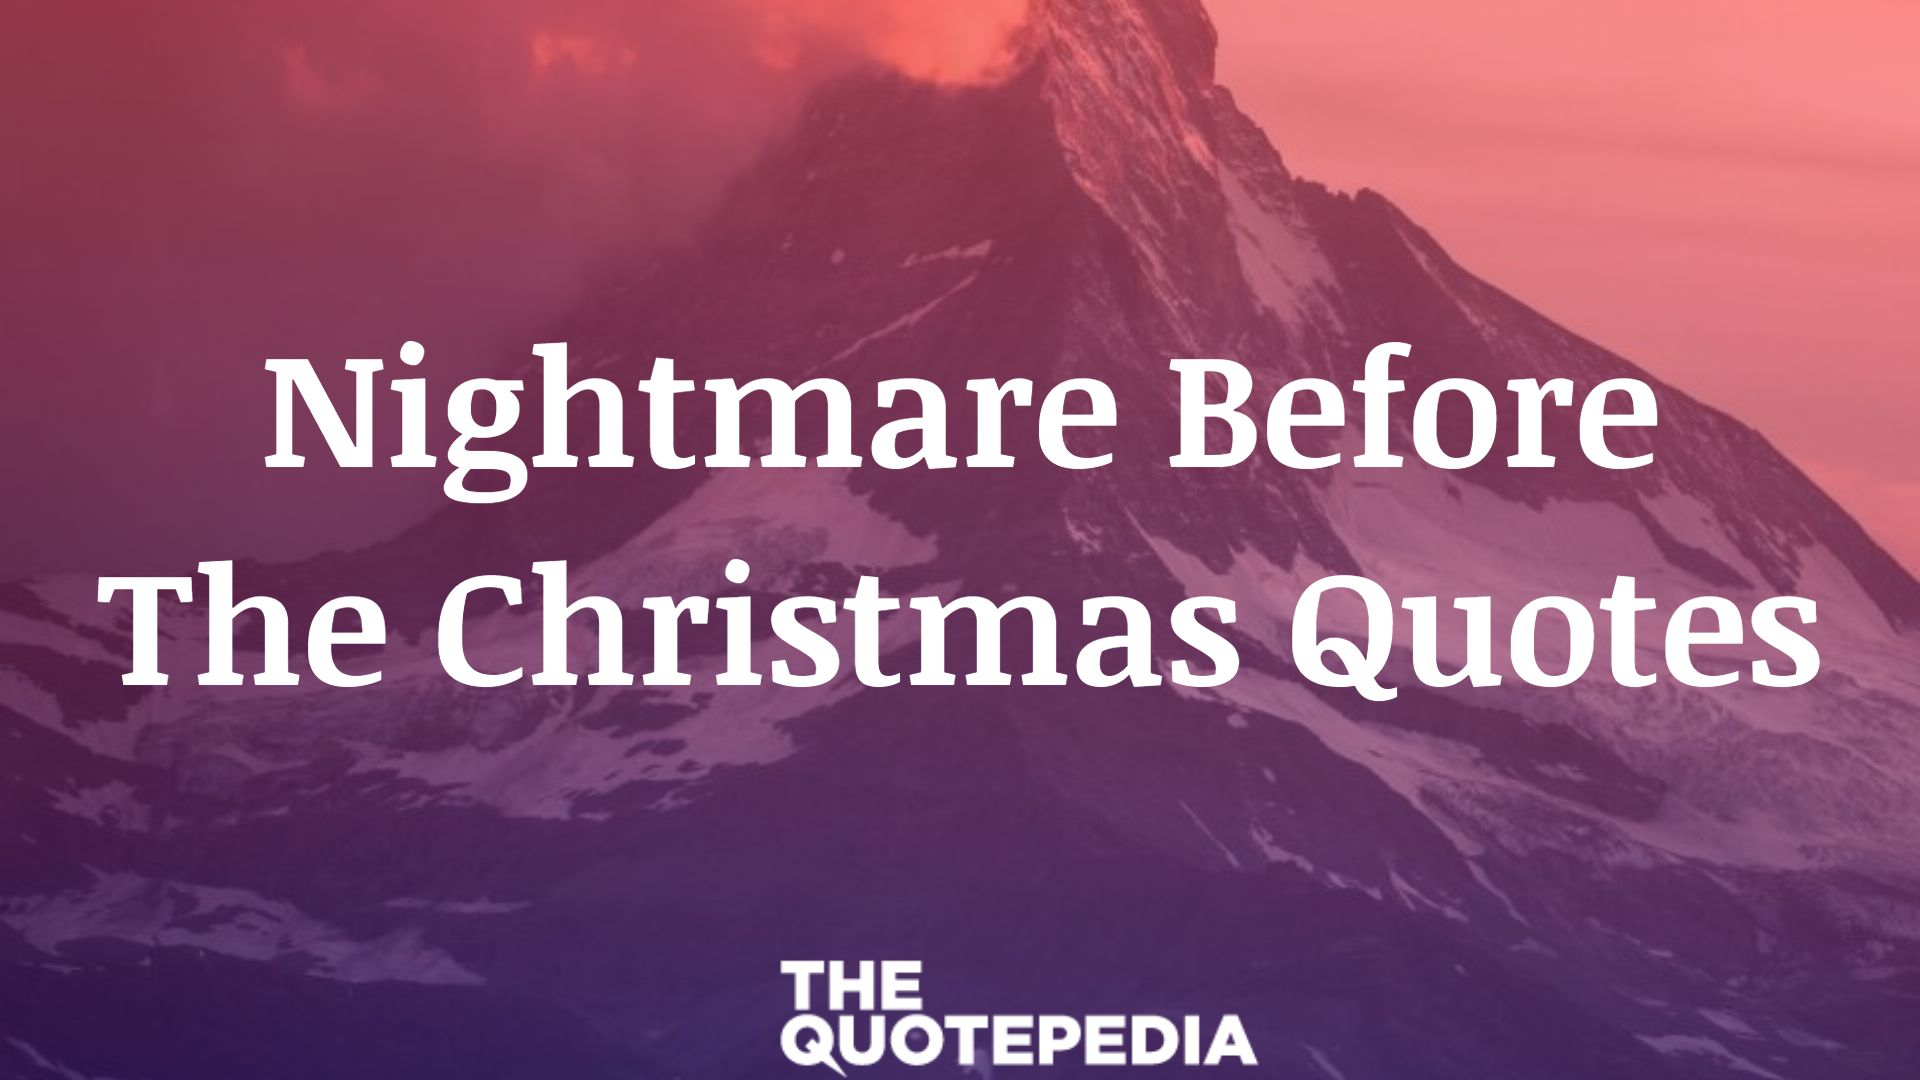 Nightmare Before The Christmas Quotes